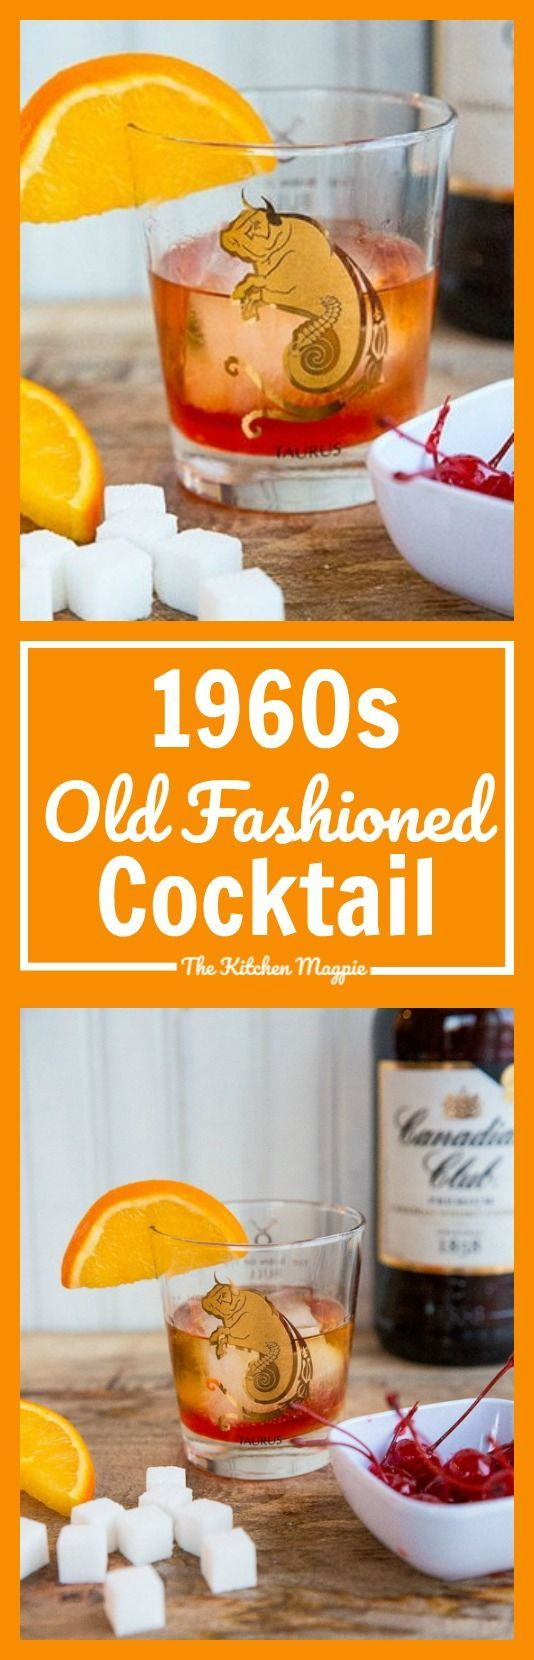 Get the perfect Old Fashioned Cocktail Recipe and learn how to make a 1960's Don Draper Old Fashioned Cocktail, the way Don would have liked it by @KitchenMagpie via @kitchenmagpie